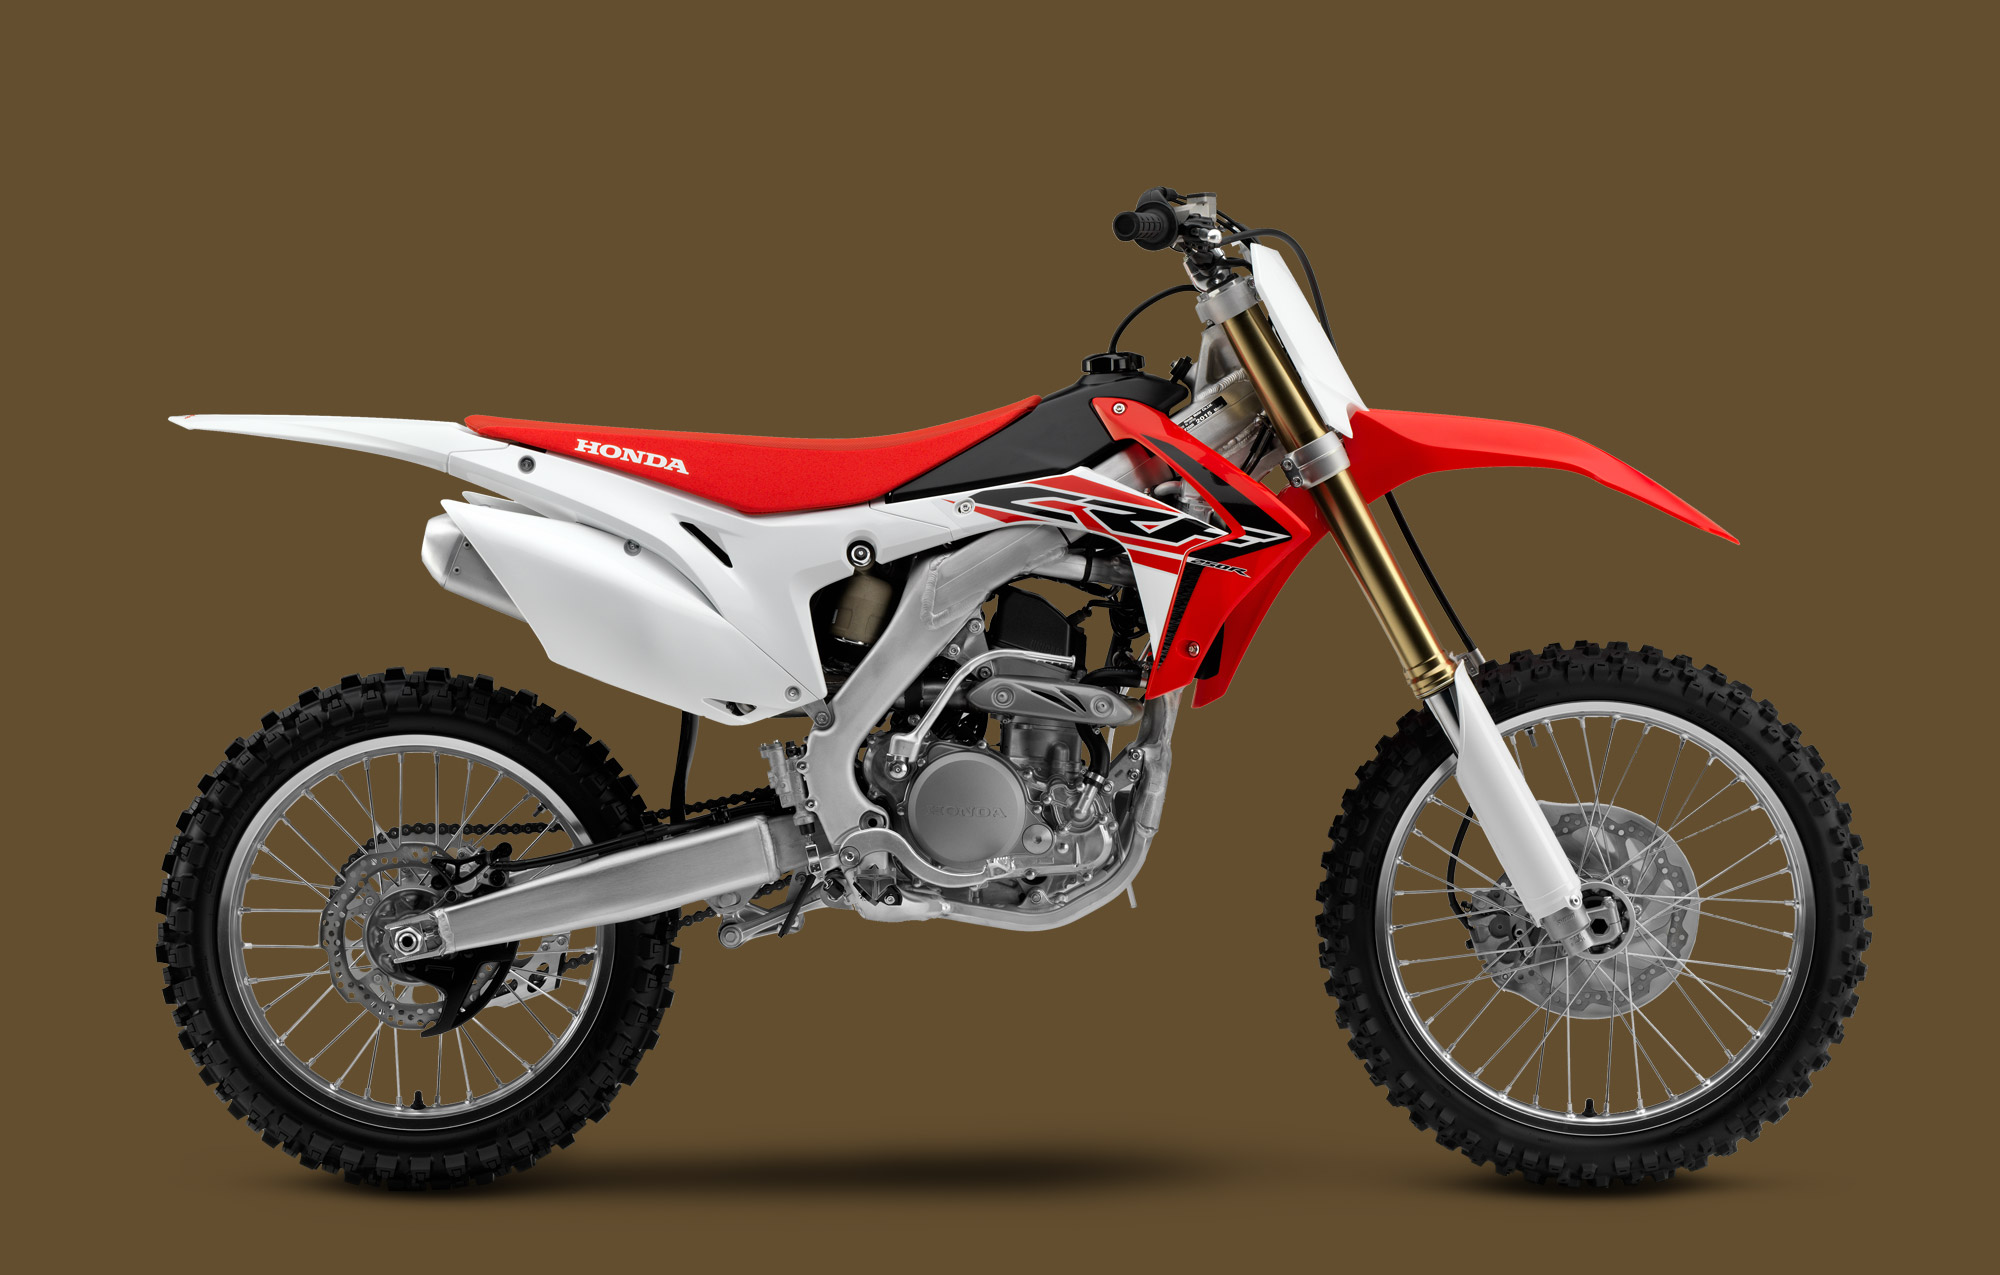 2015 Honda Crf250r Brings A New Frame And Three Engine Mappings Crf Wiring Diagram